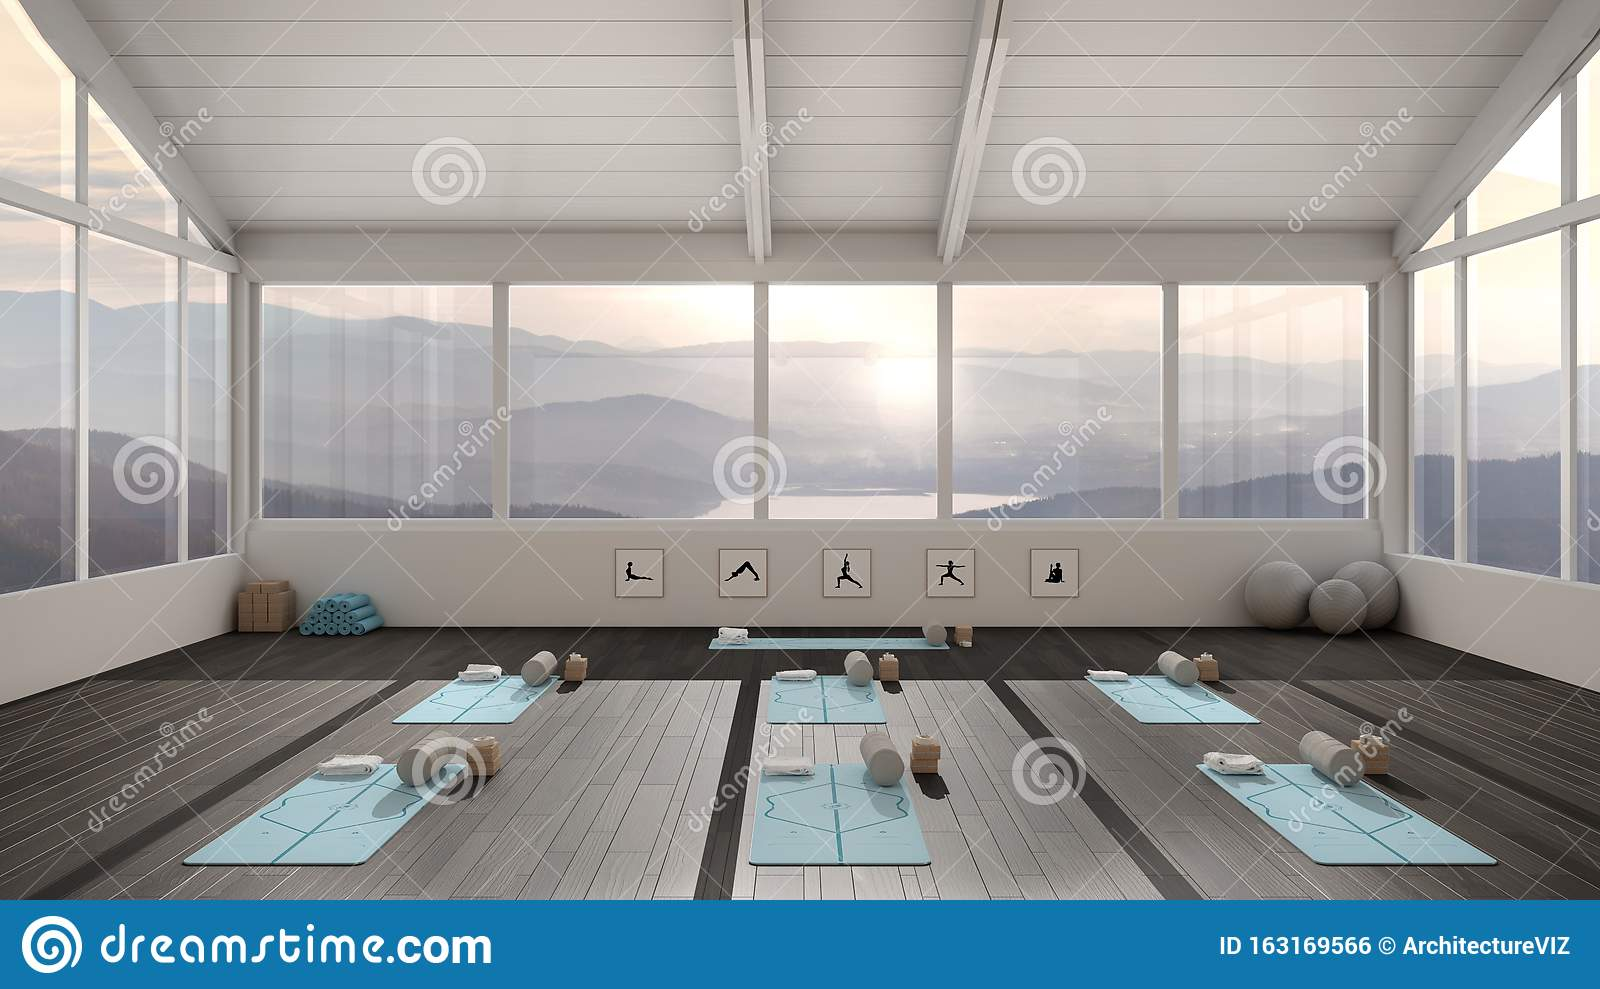 Empty Yoga Studio Interior Design Architecture Minimal Open Space Spatial Organization With Mats And Accessories Ready For Stock Illustration Illustration Of Design Minimal 163169566